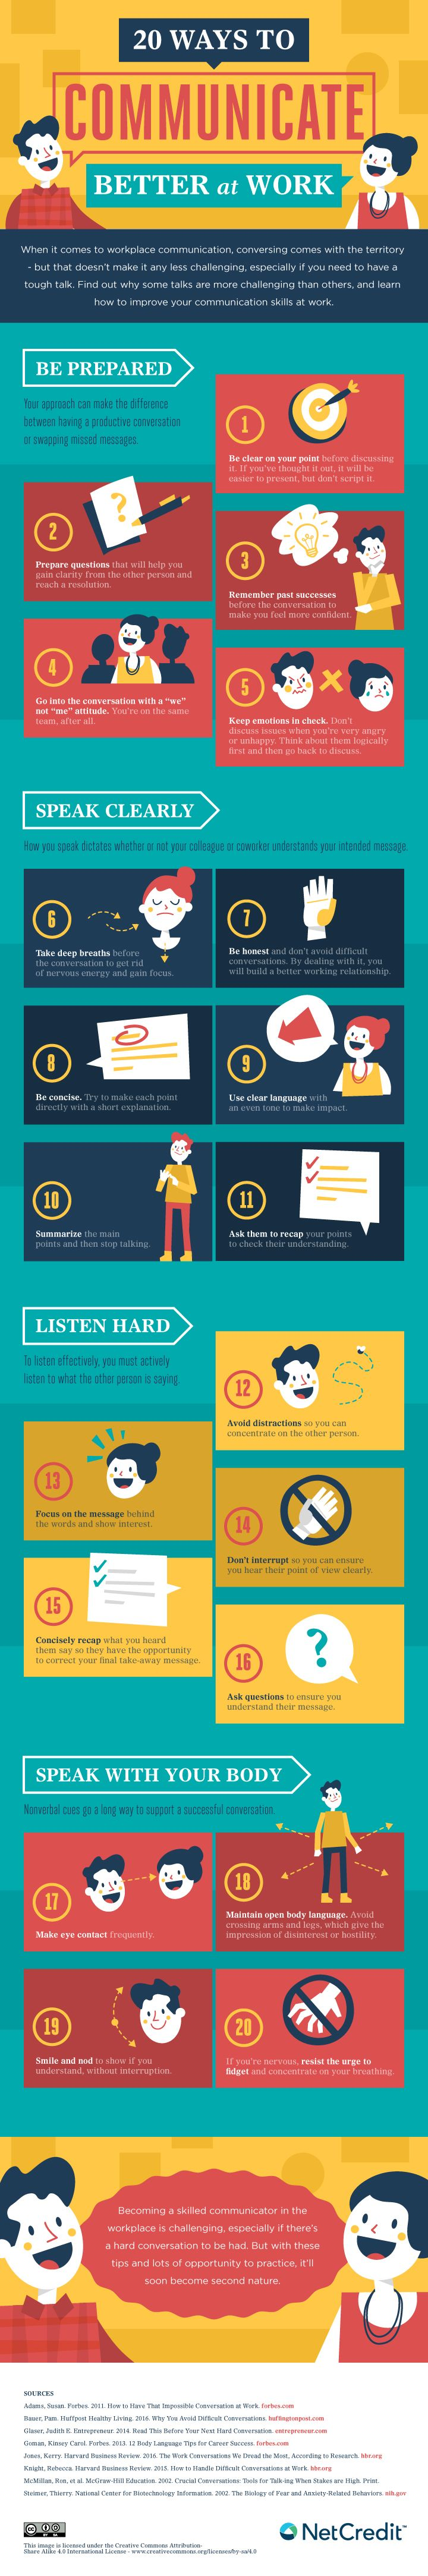 20 Ways to Communicate Better at Work